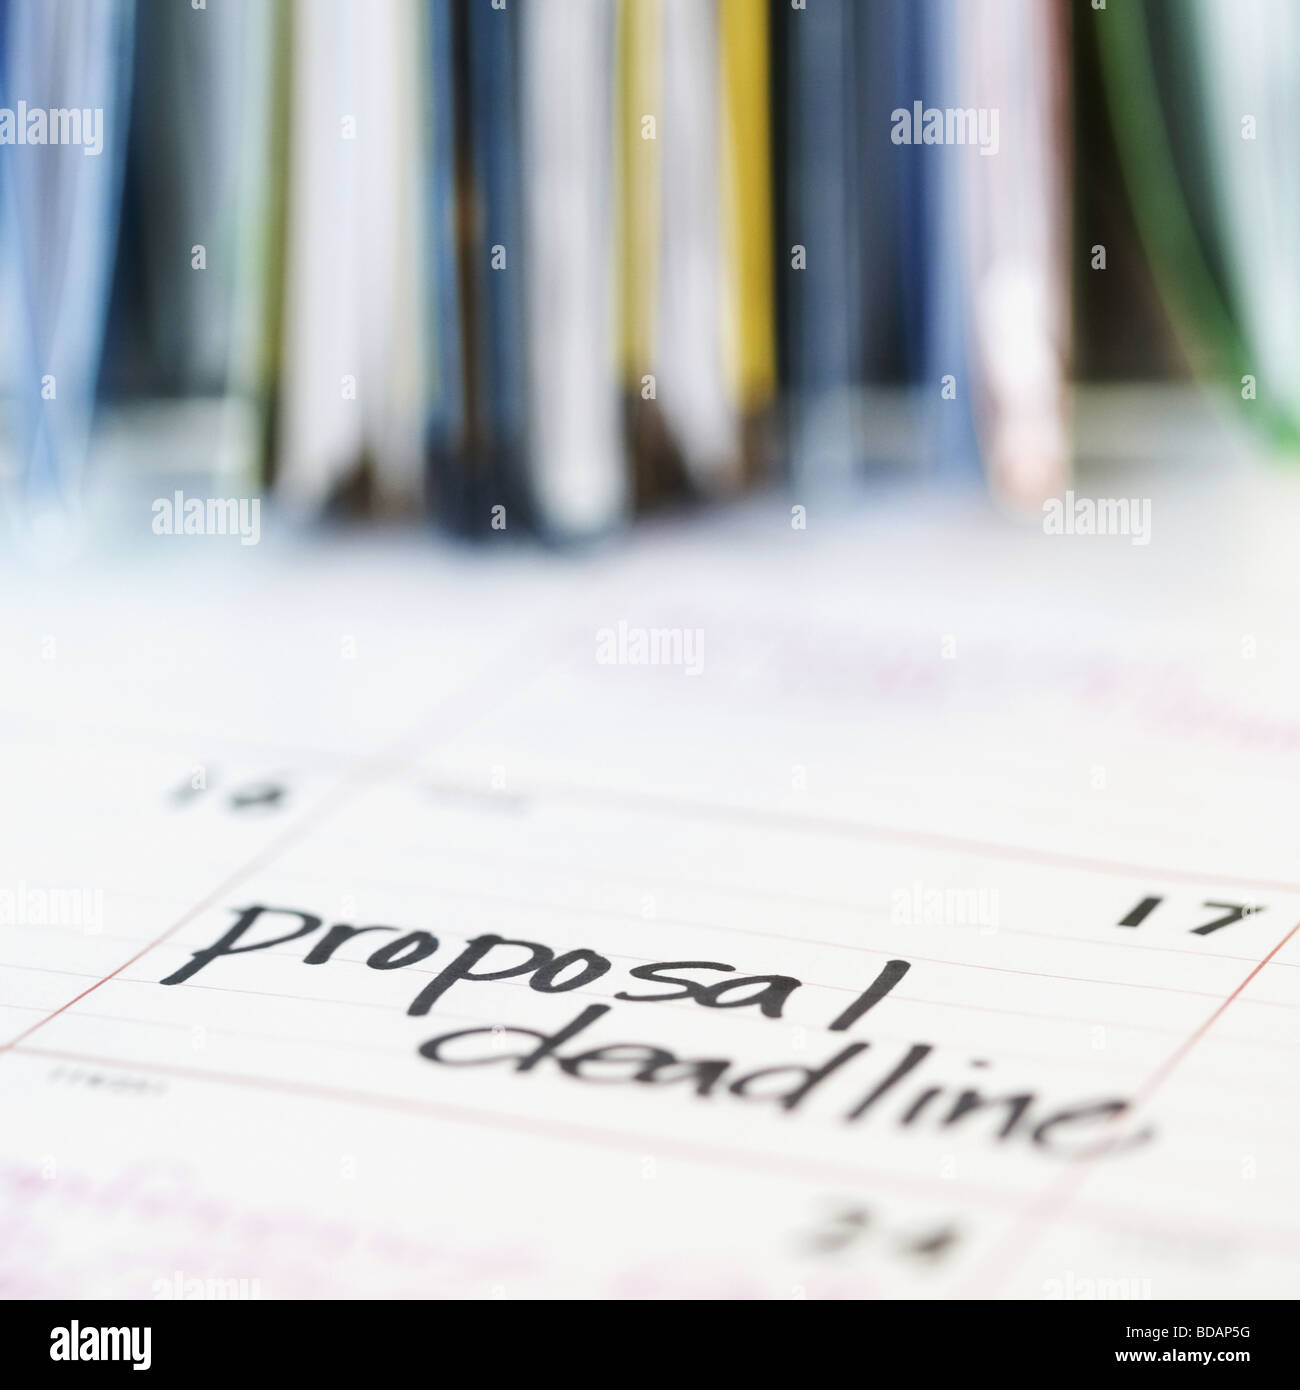 Close-up of text Proposal Deadline written on a calendar date - Stock Image